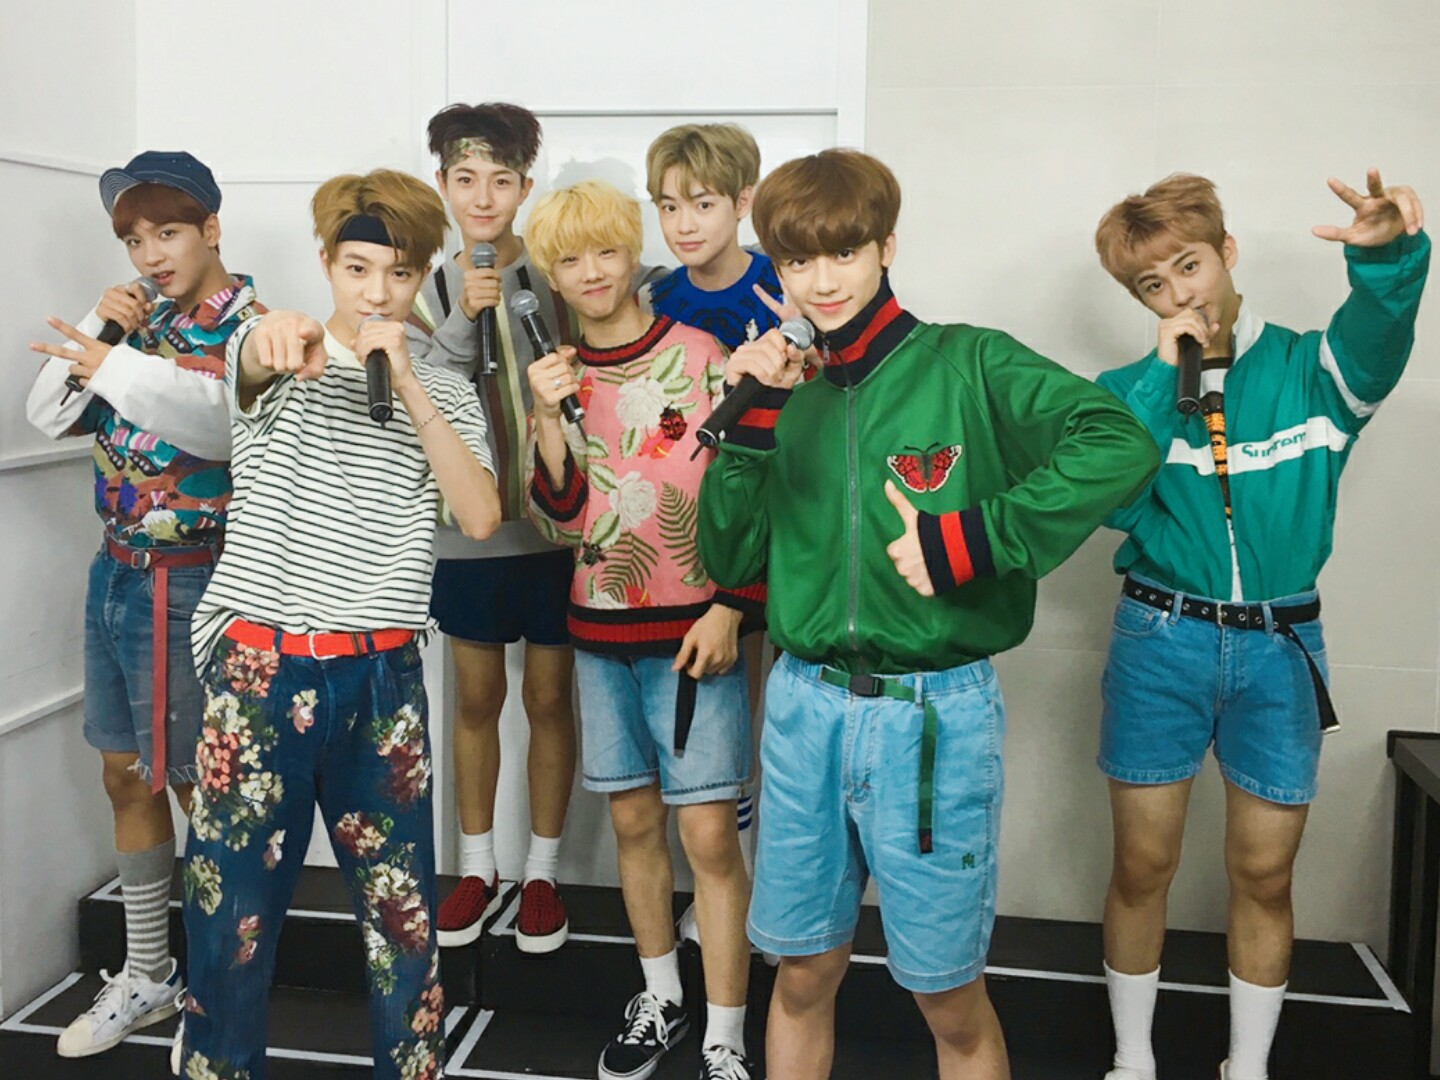 picture - 2016 09 02 [vyrl] nct dream - music bank | FromYesterday0214